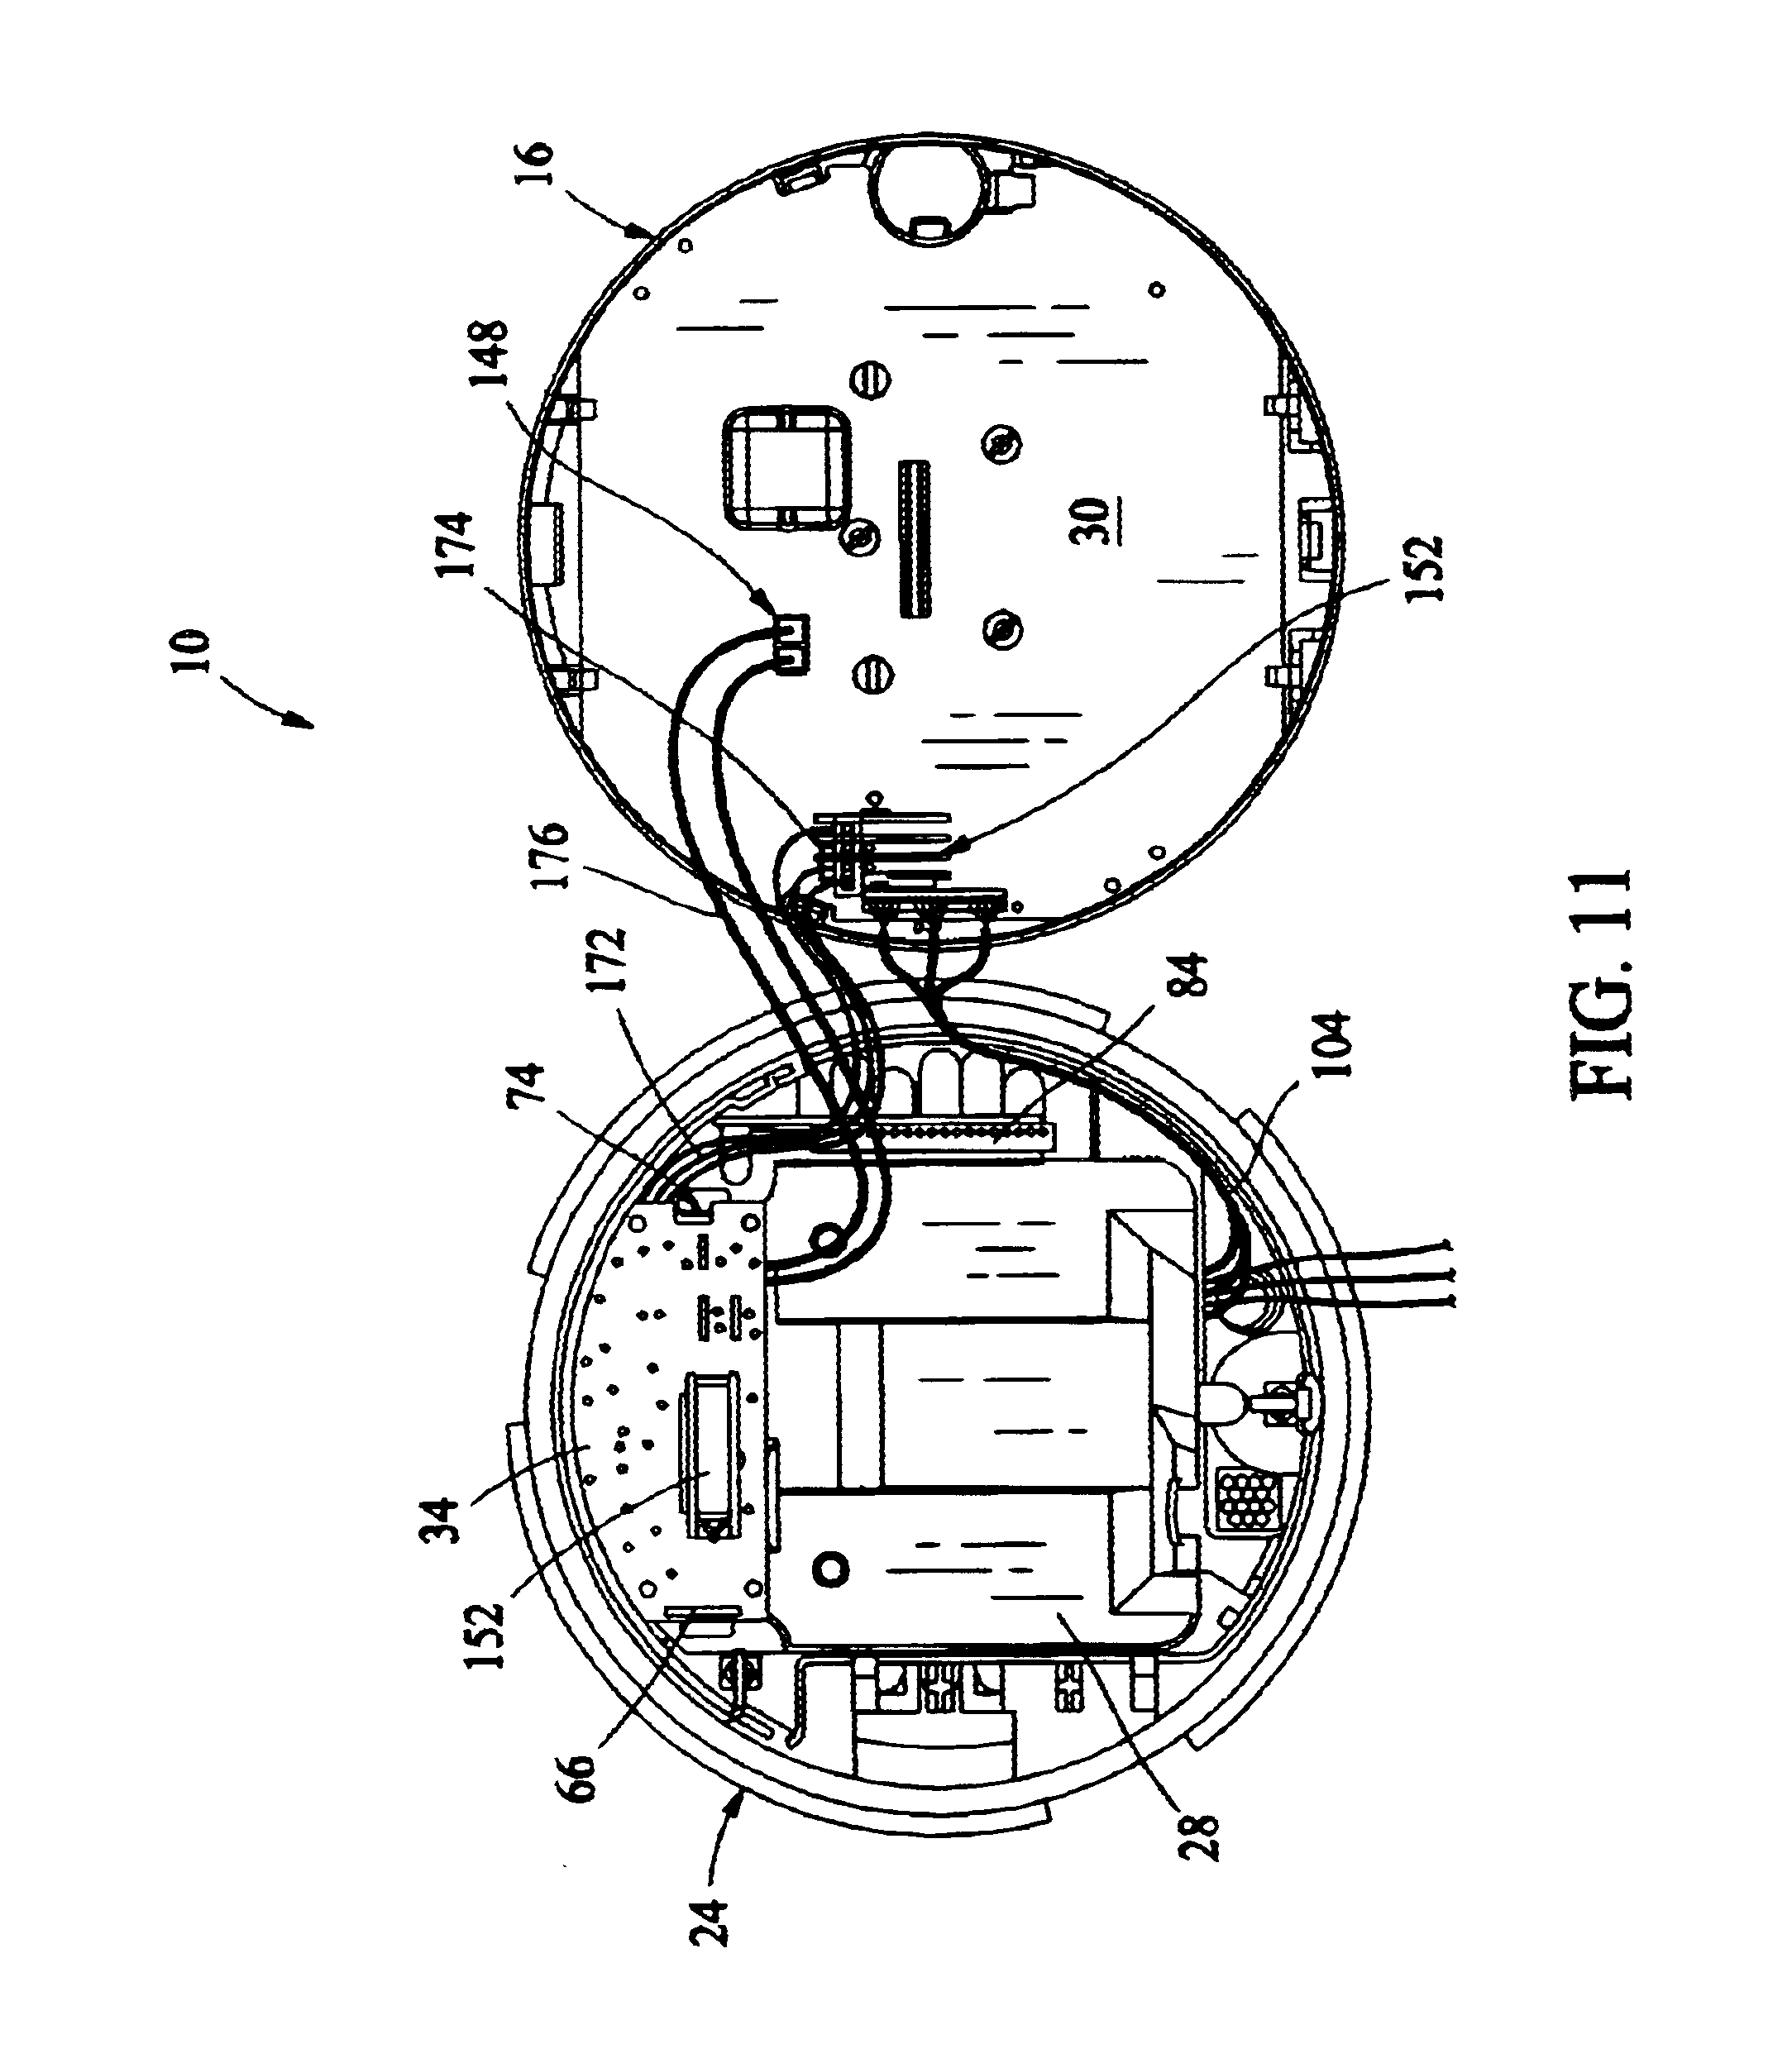 patent us6612866 - voltage isolator connector device for printed circuit board assembly